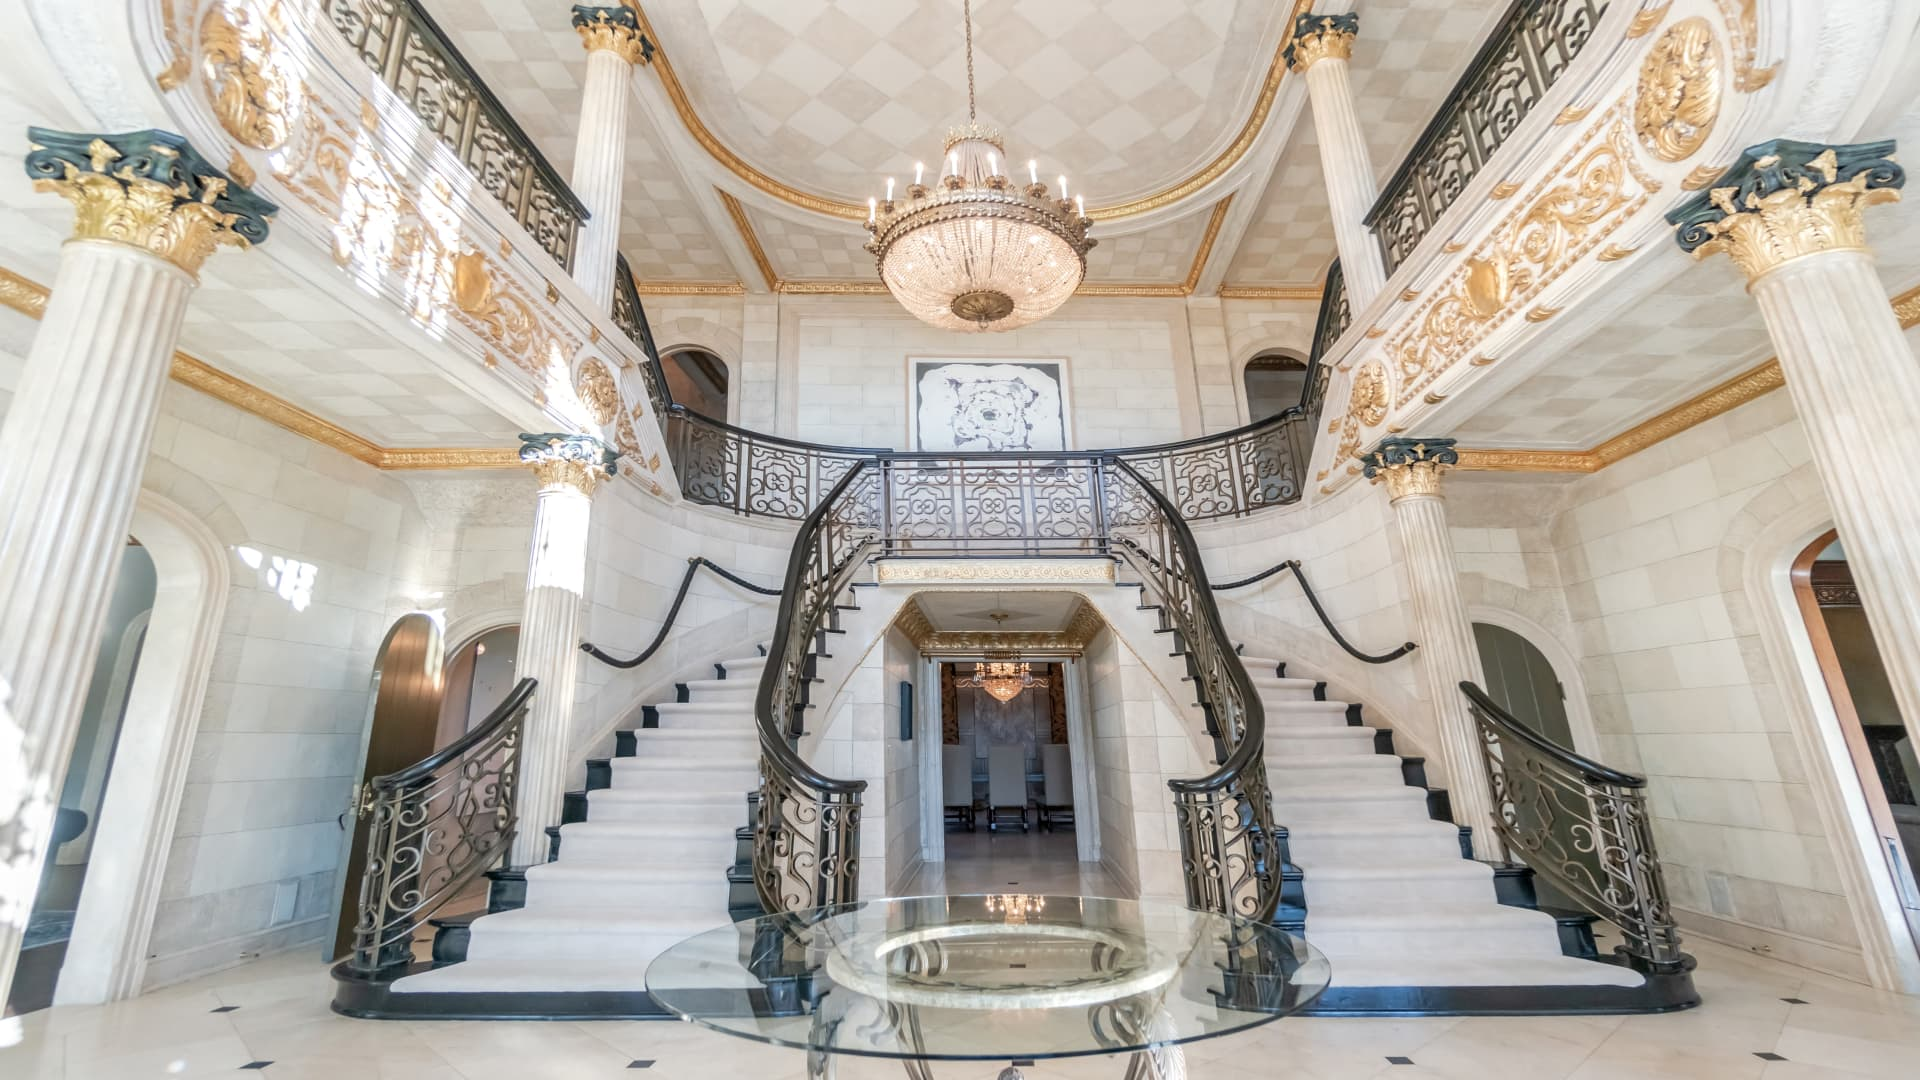 The guilded entry way includes ornate columns, gold trim and a double staircase.